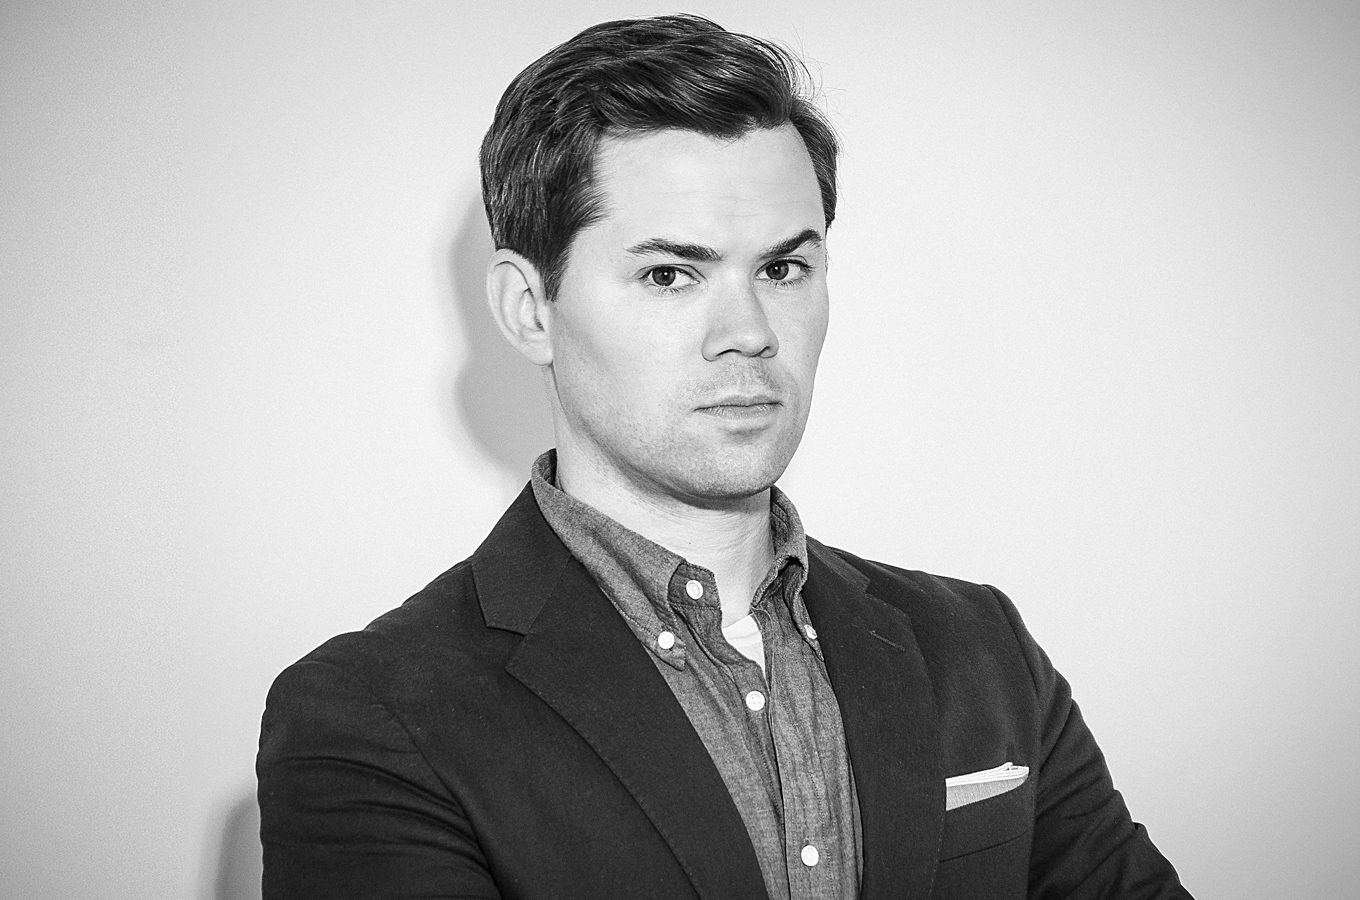 andrew rannells book of mormonandrew rannells height, andrew rannells wdw, andrew rannells instagram, andrew rannells michael doyle, andrew rannells you'll be back, andrew rannells lena dunham, andrew rannells, andrew rannells hamilton, andrew rannells hedwig, andrew rannells book of mormon, andrew rannells boyfriend, andrew rannells glee, andrew rannells twitter, andrew rannells how i met your mother, andrew rannells i believe, andrew rannells wiki, andrew rannells gavin creel, andrew rannells imdb, andrew rannells jimmy fallon, andrew rannells shirtless